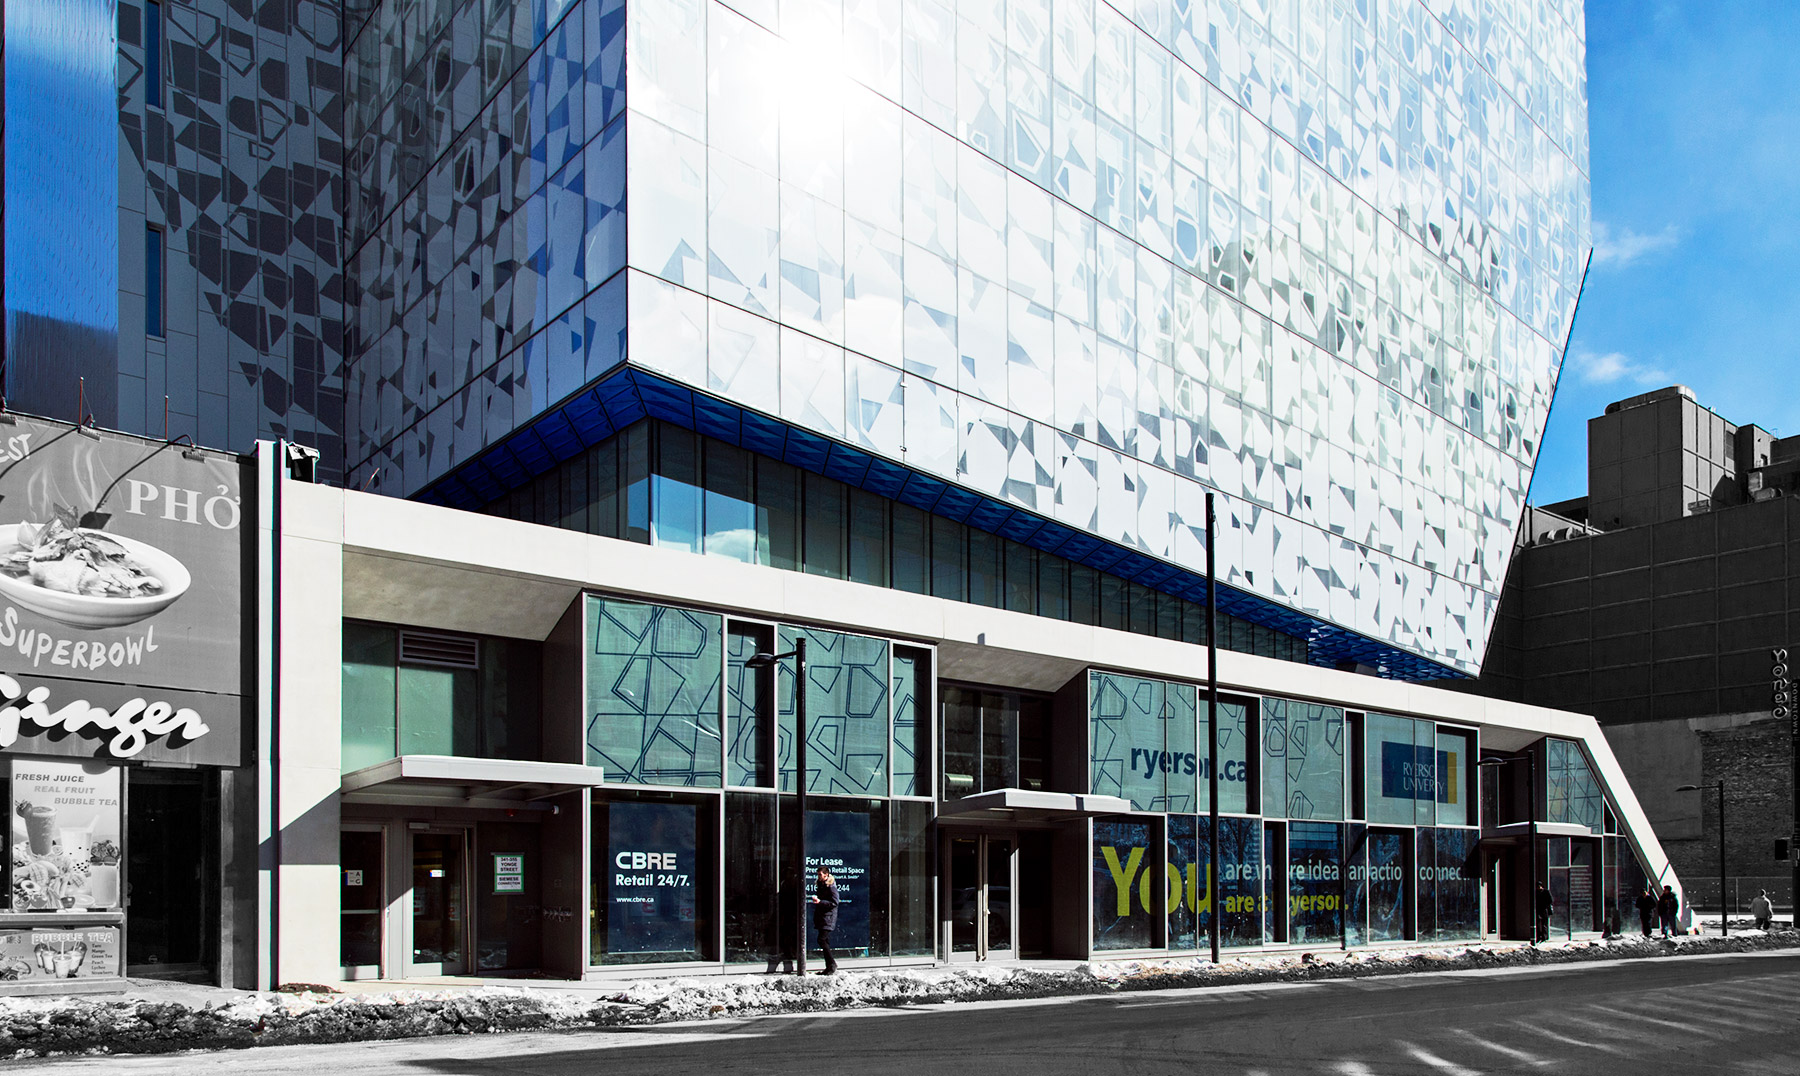 20150222. The indelible Yonge St face of Toronto's new Ryerson U